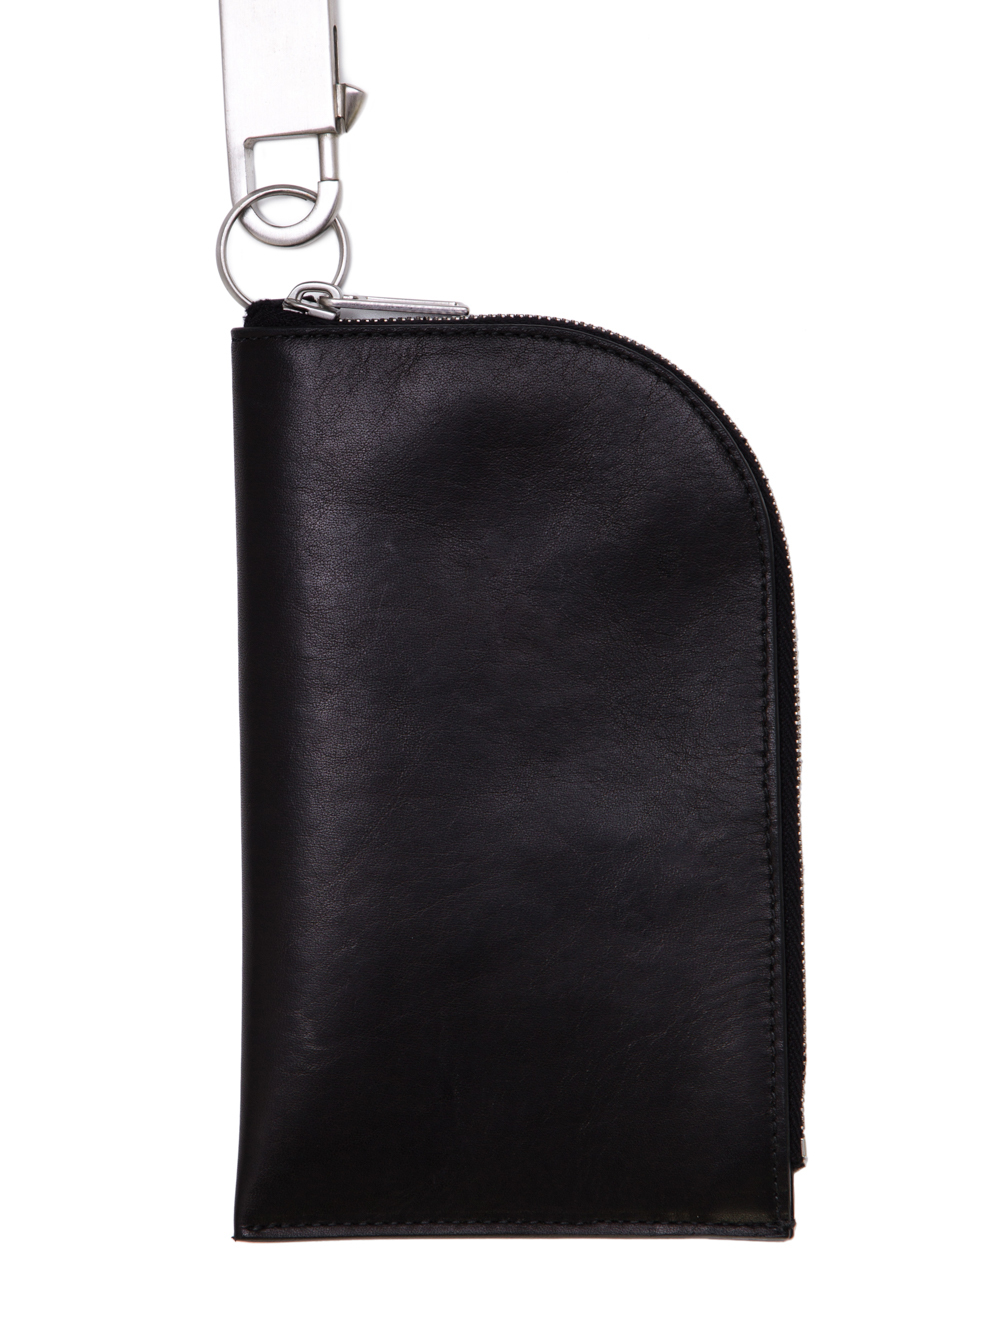 RICK OWENS SS19 BABEL CLASSIC NECKWALLET IN BLACK LEATHER